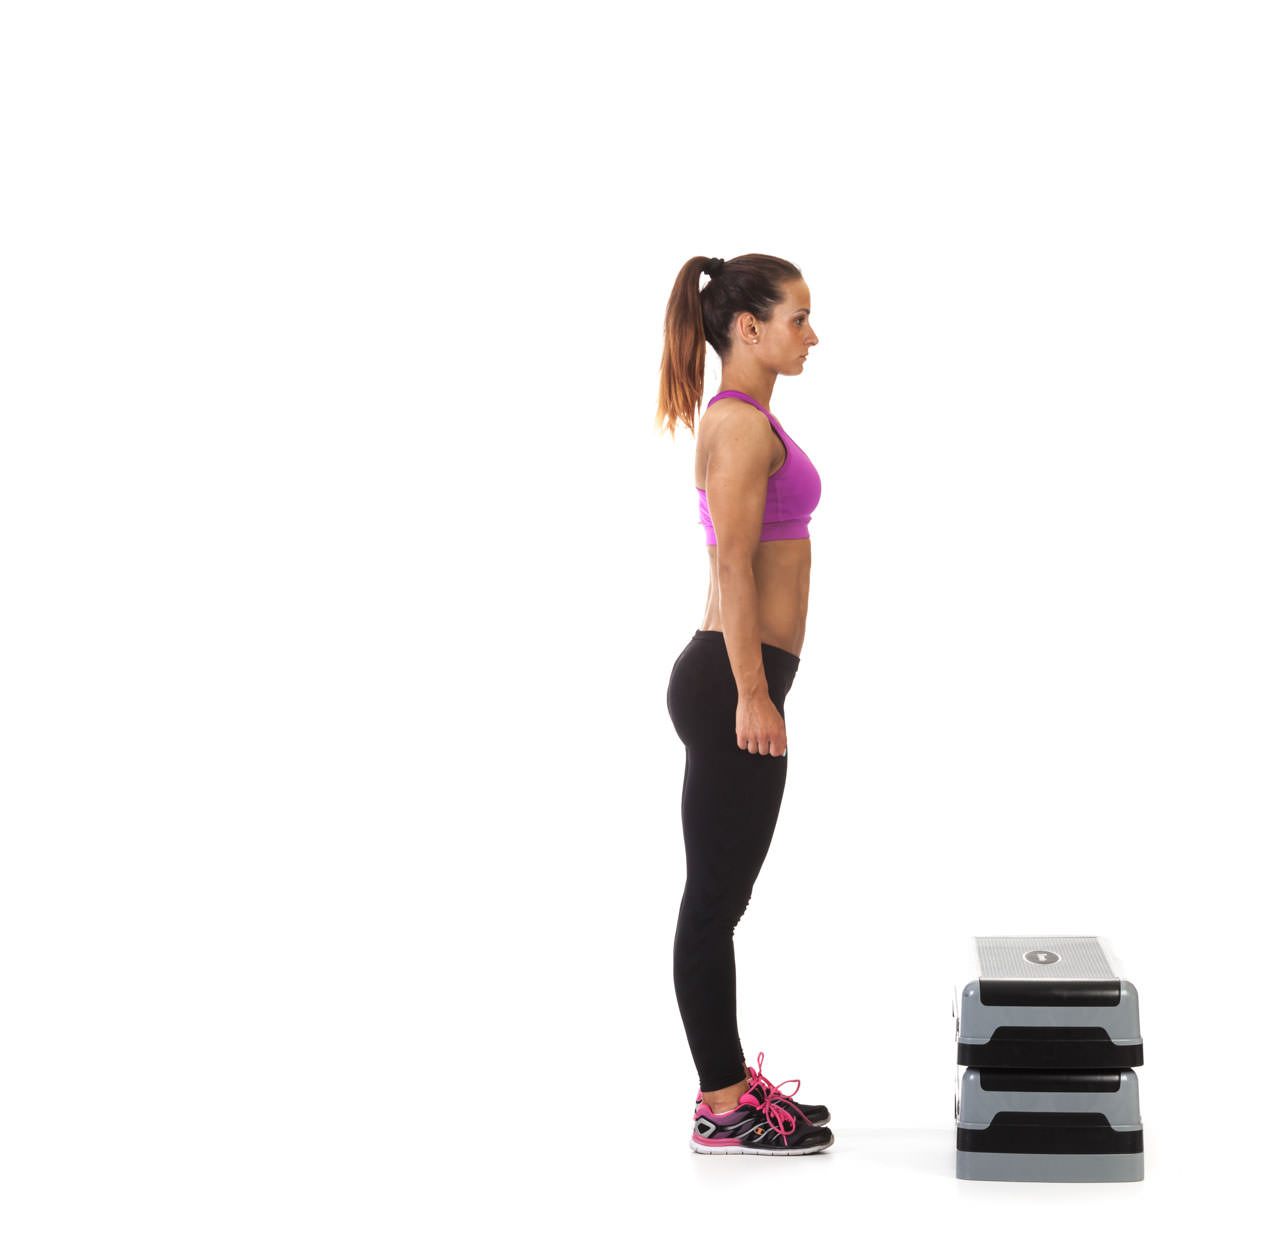 Burpee with Box Jump frame #1